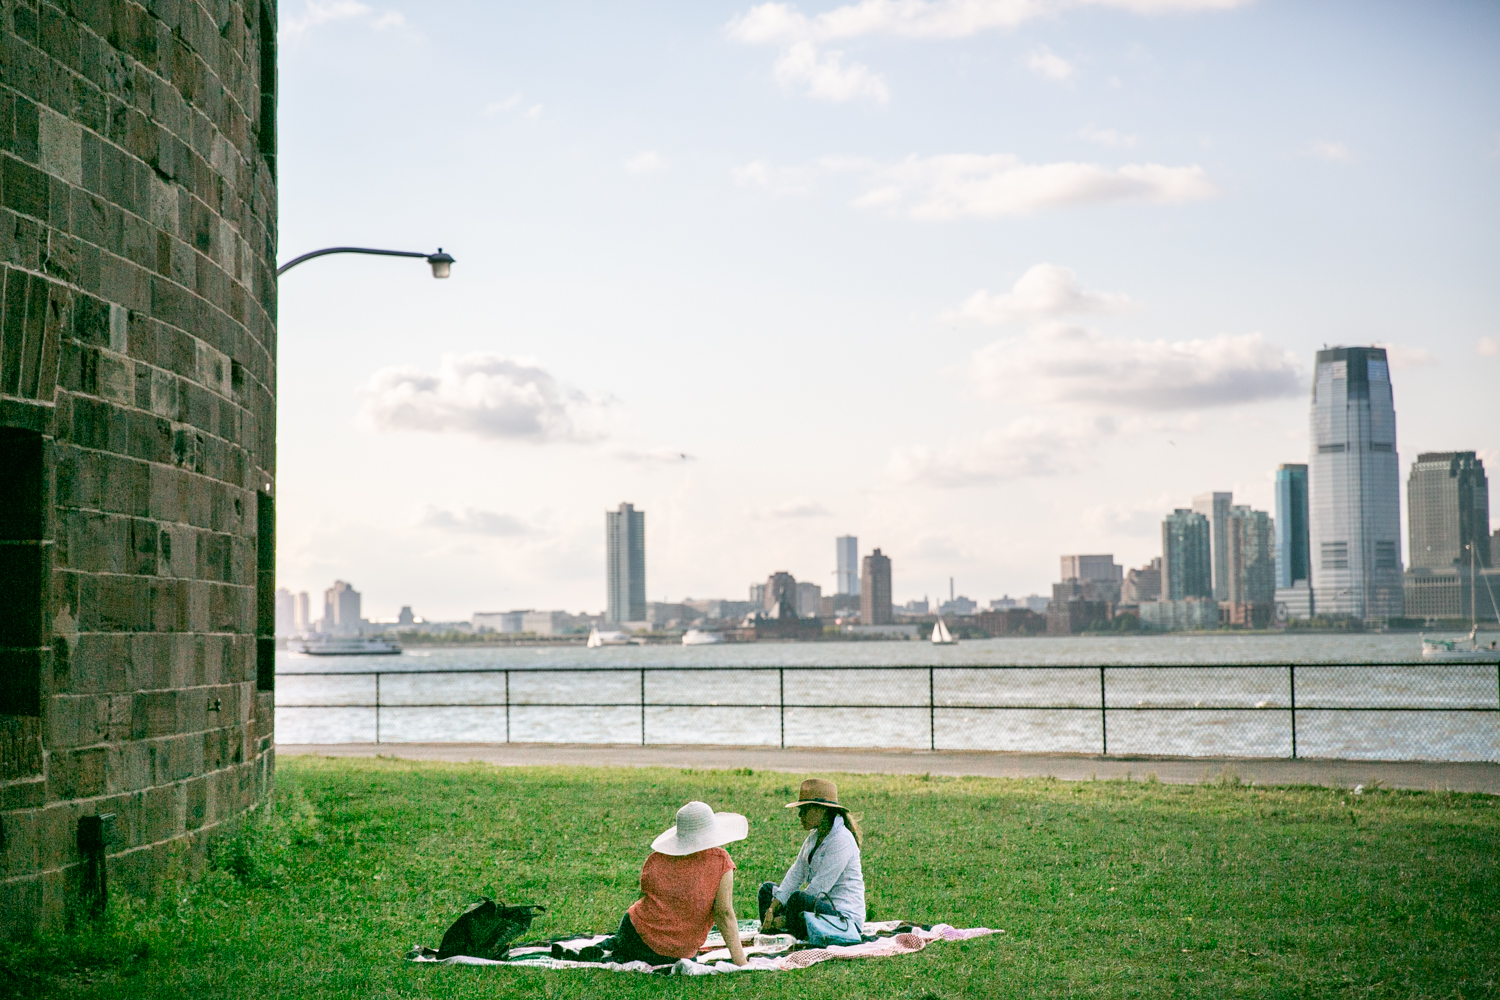 Governors Island photos of two women sitting in grass with NYC skyline in background